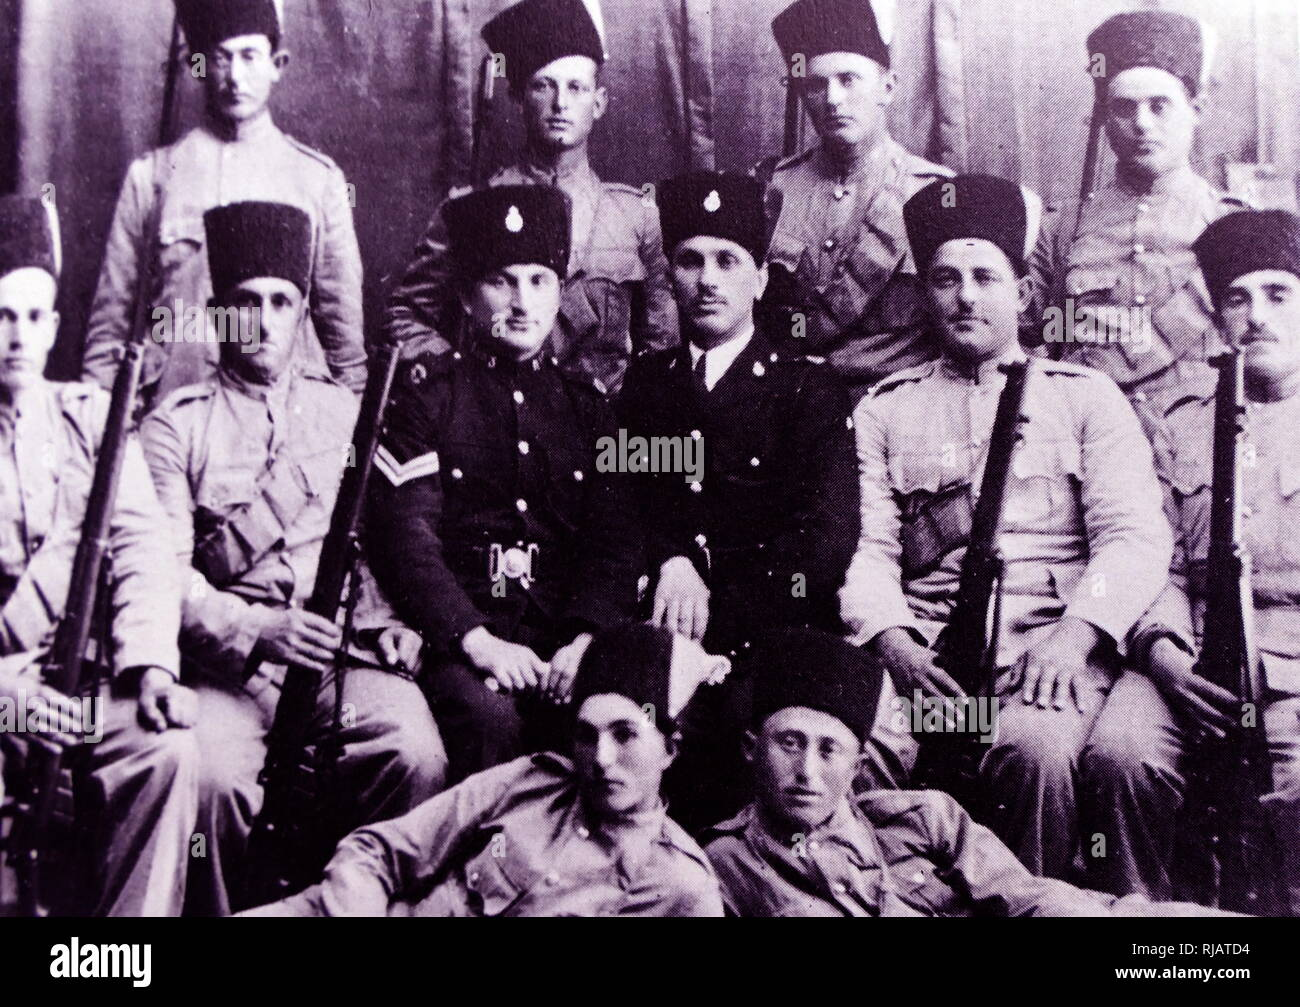 Yigal Allon (back row third from right) in a group of Jewish Settlement Police (JSP), a division of the Notrim established in Mandatory Palestine in 1936, during the 1936-39 Arab revolt. Yigal Allon (1918 - 1980) was an Israeli politician, a commander of the Palmas, and a general in the IDF. He served as one of the leaders of Ahdut HaAvoda party and the Israeli Labour party, and acting Prime Minister of Israel. - Stock Image